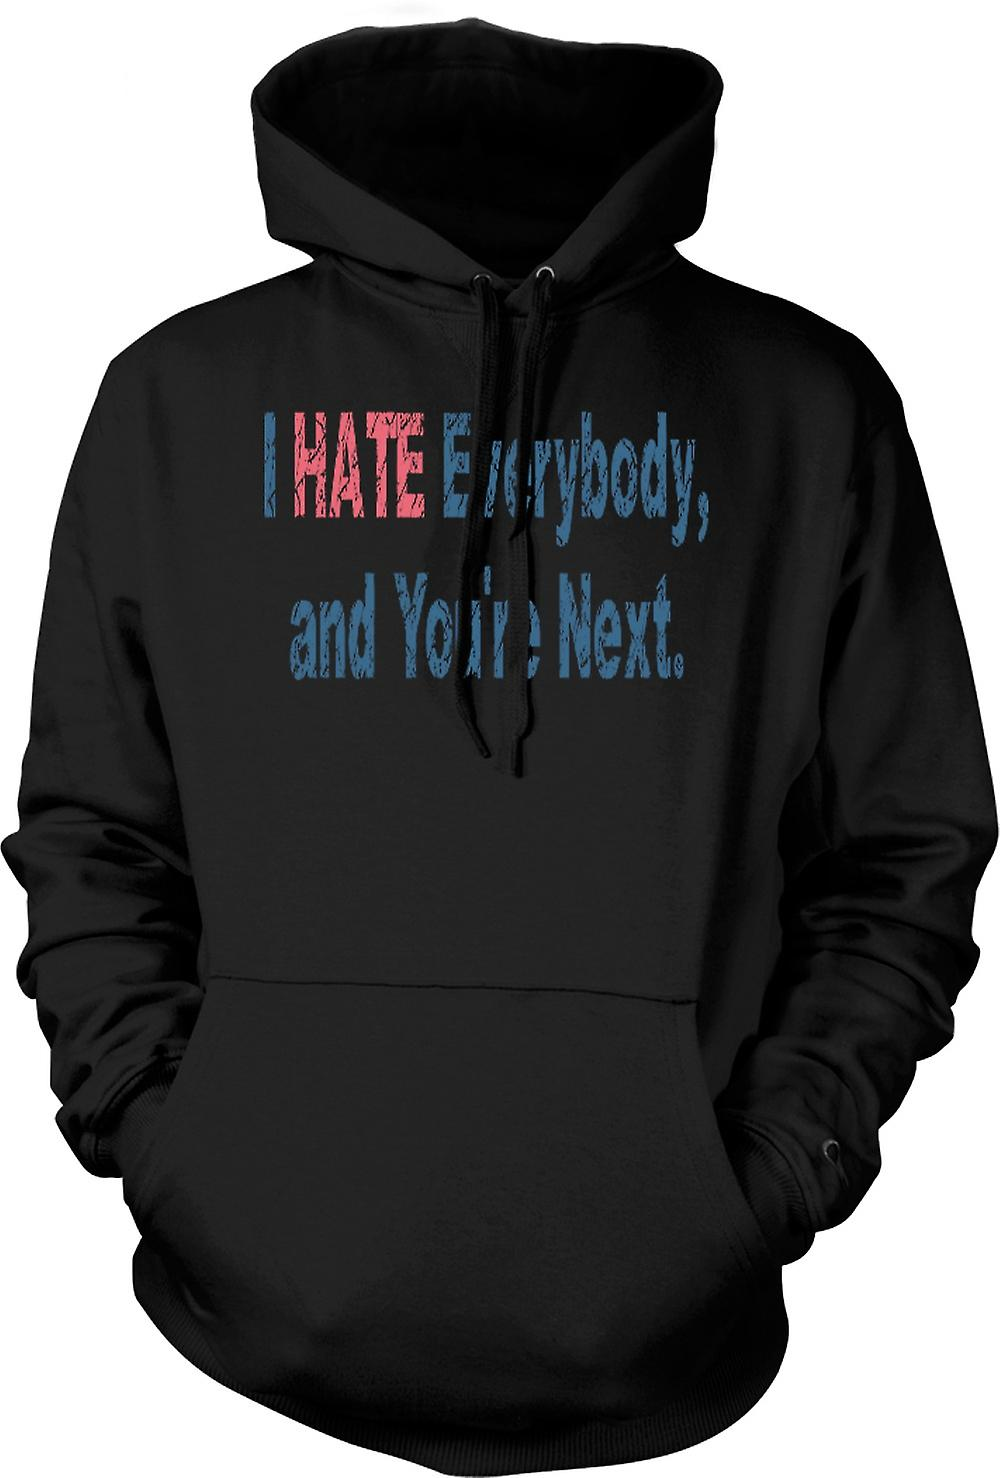 Mens Hoodie - I HATE everybody, and you're next.